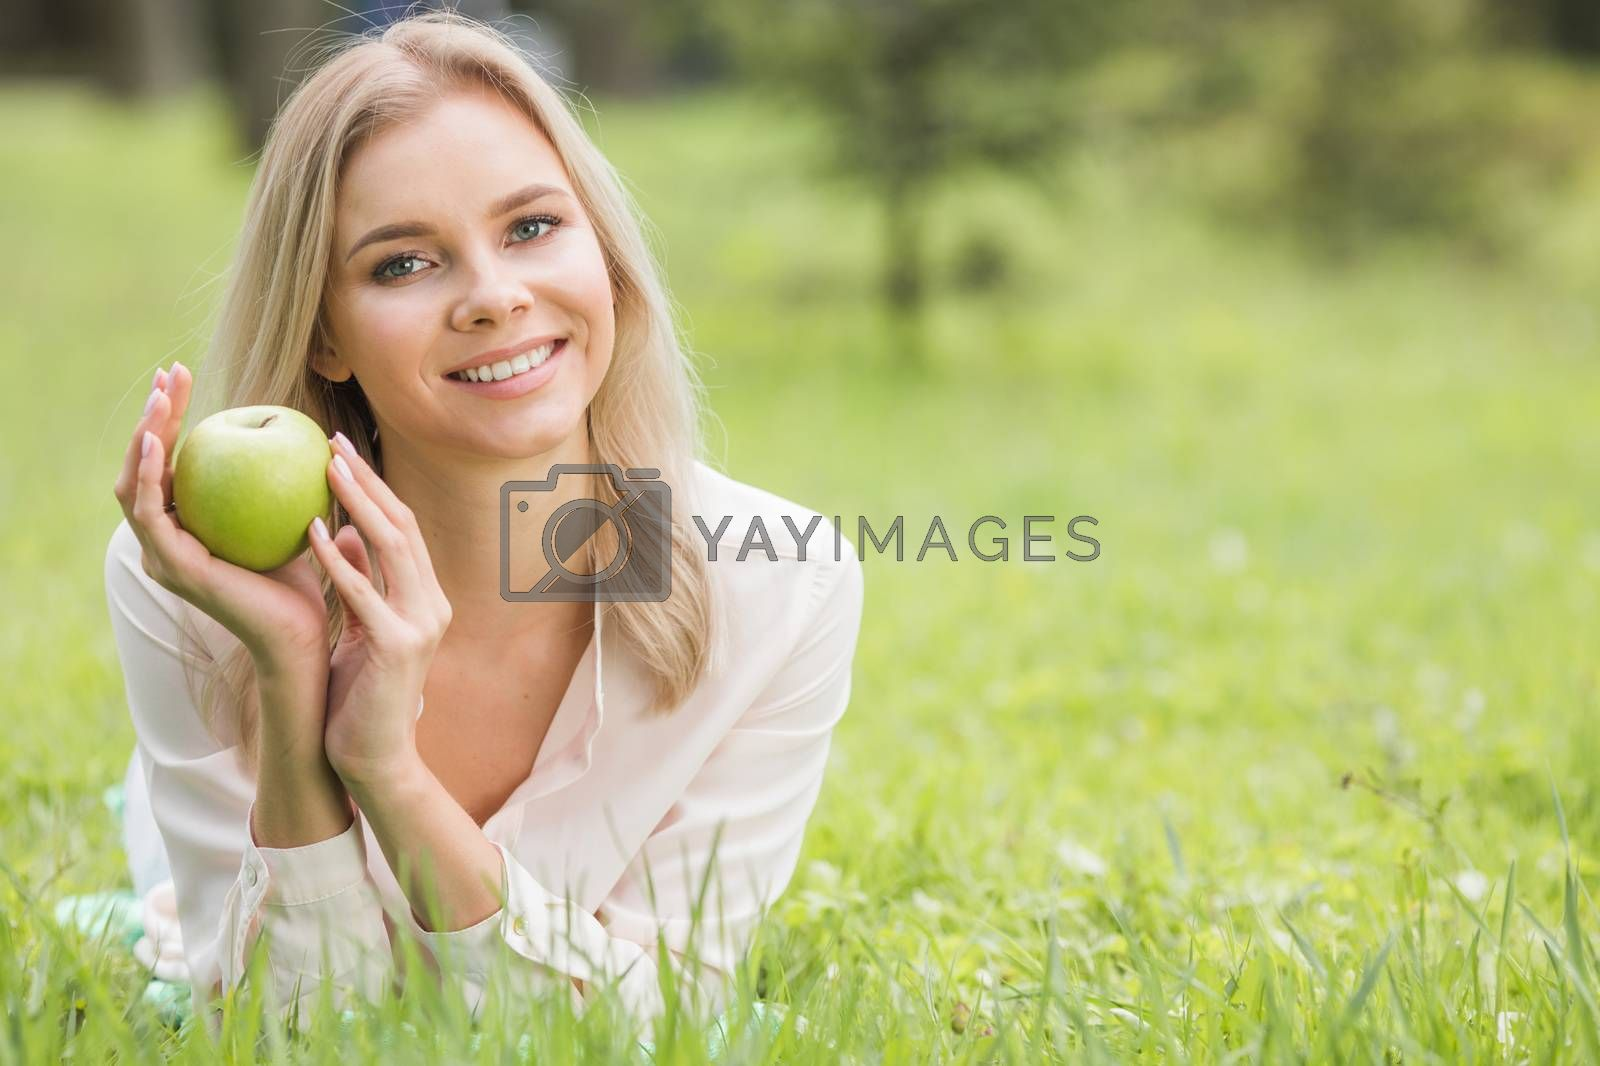 Woman with apple on grass by Yellowj